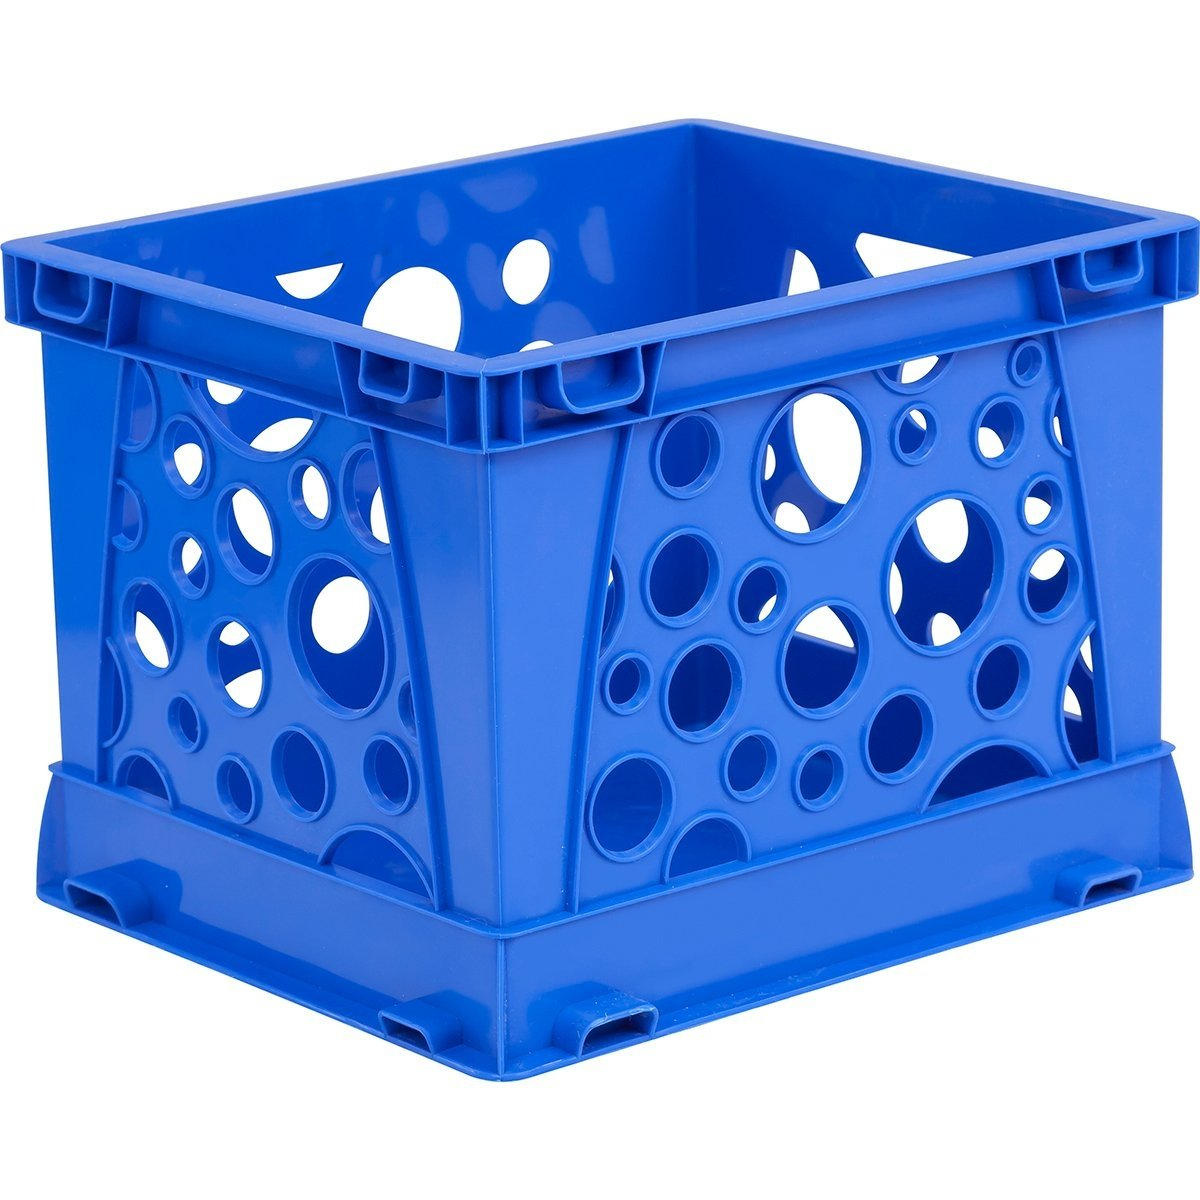 Storex Large Storage and Transport File Crate Green STX61556U01C 17.25 x 14.25 x 10.5 Inches